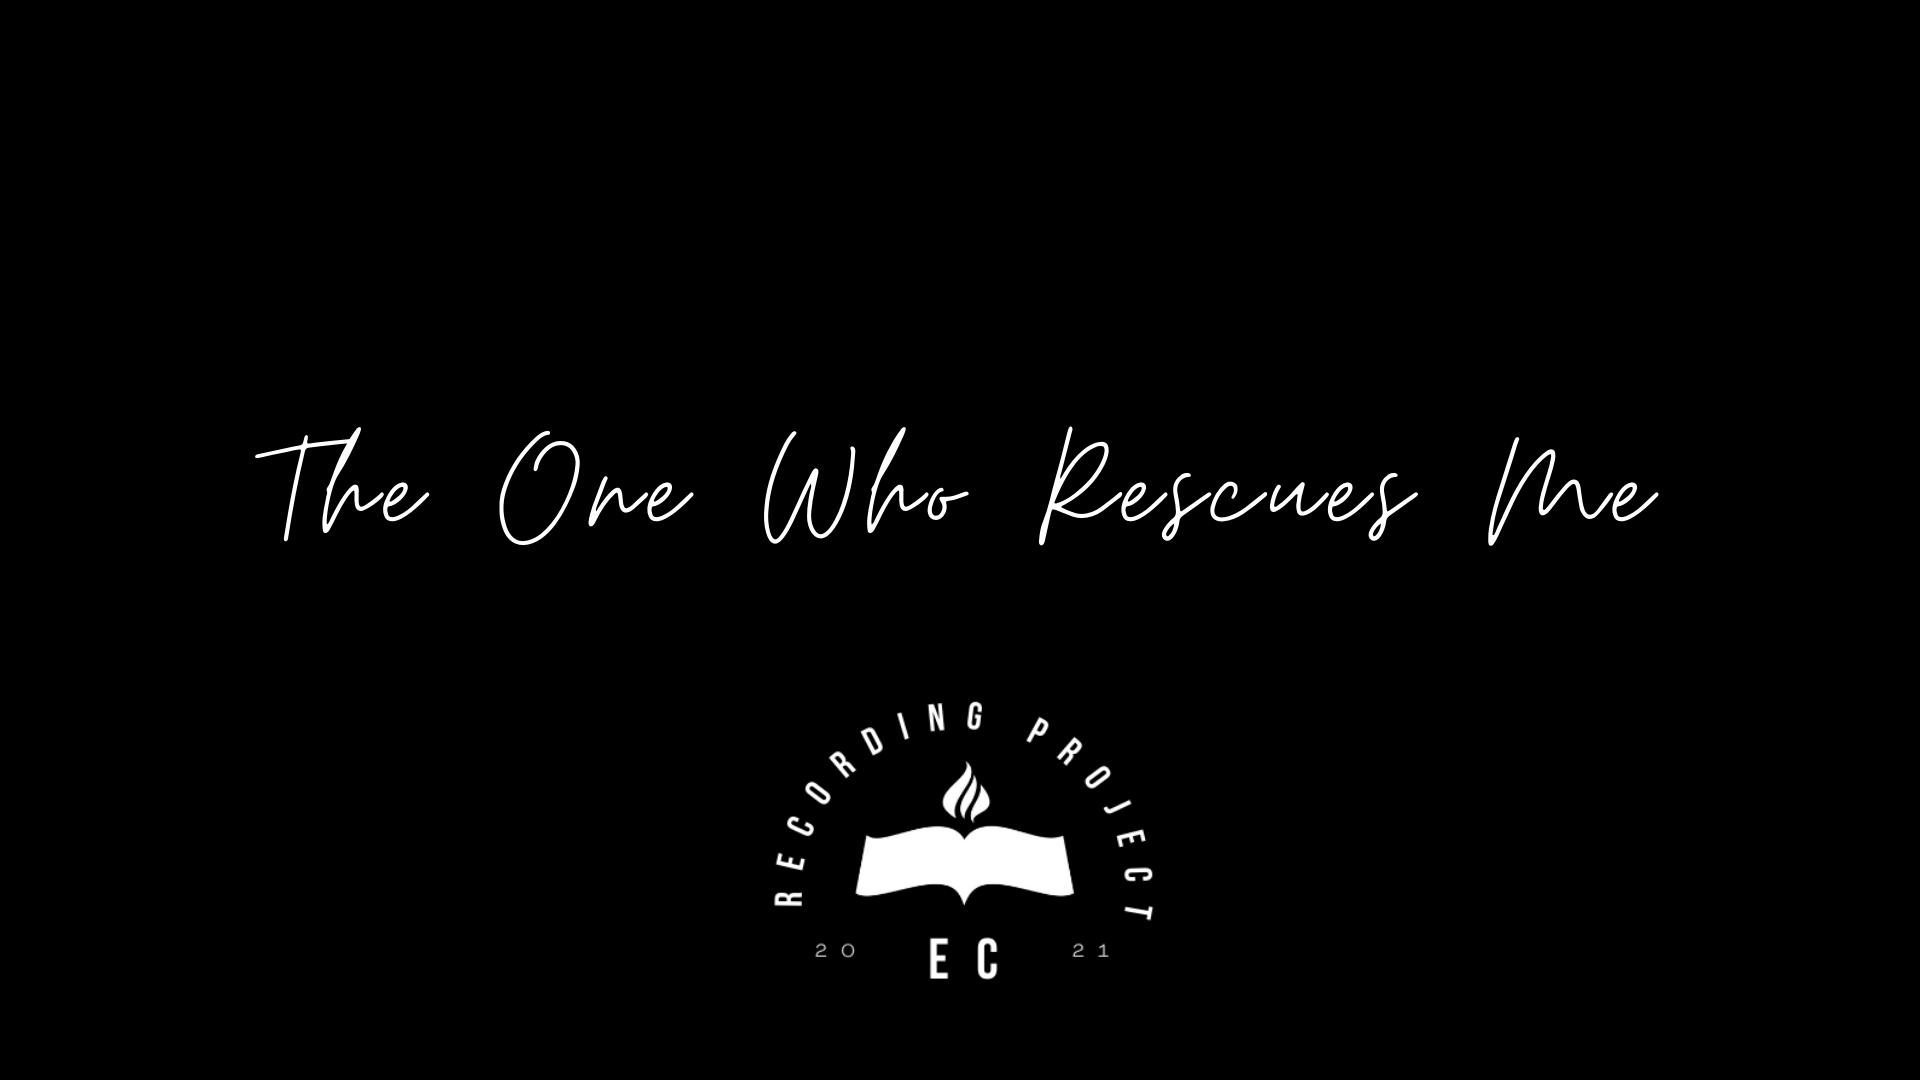 TheOneWhoRescuesMe